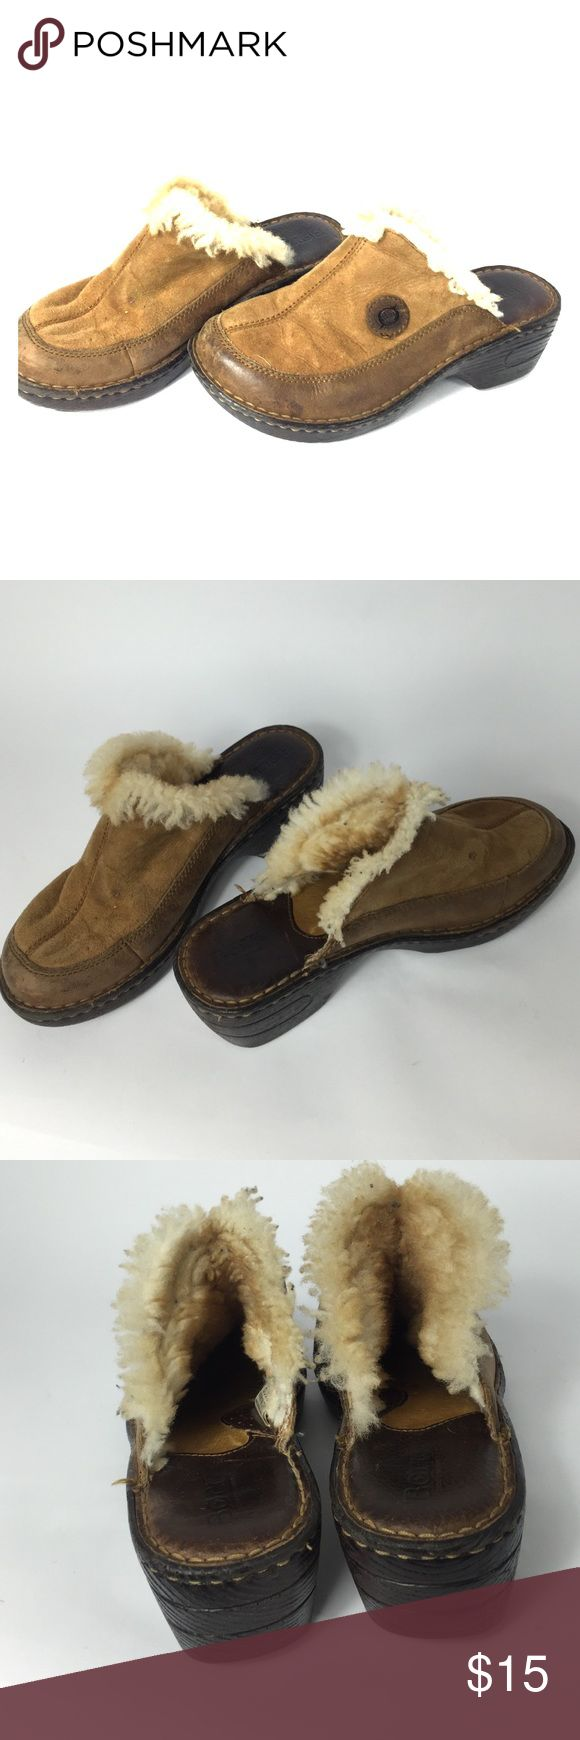 *Born* woman's fur clogs 8/10 condition. Good condition. Comfortable for a quick visit to Walmart or a walk to the park with the dog. Suede a little worn. Size 6. 2.5 inch heel. Normal wear/ tear all around both shoes ( see pictures).I am a businessman, make me an offer I cant refuse! Please do not hesitate to ask any questions or for more pictures. Thank you for your time and have a wonderful day Born Shoes Mules & Clogs